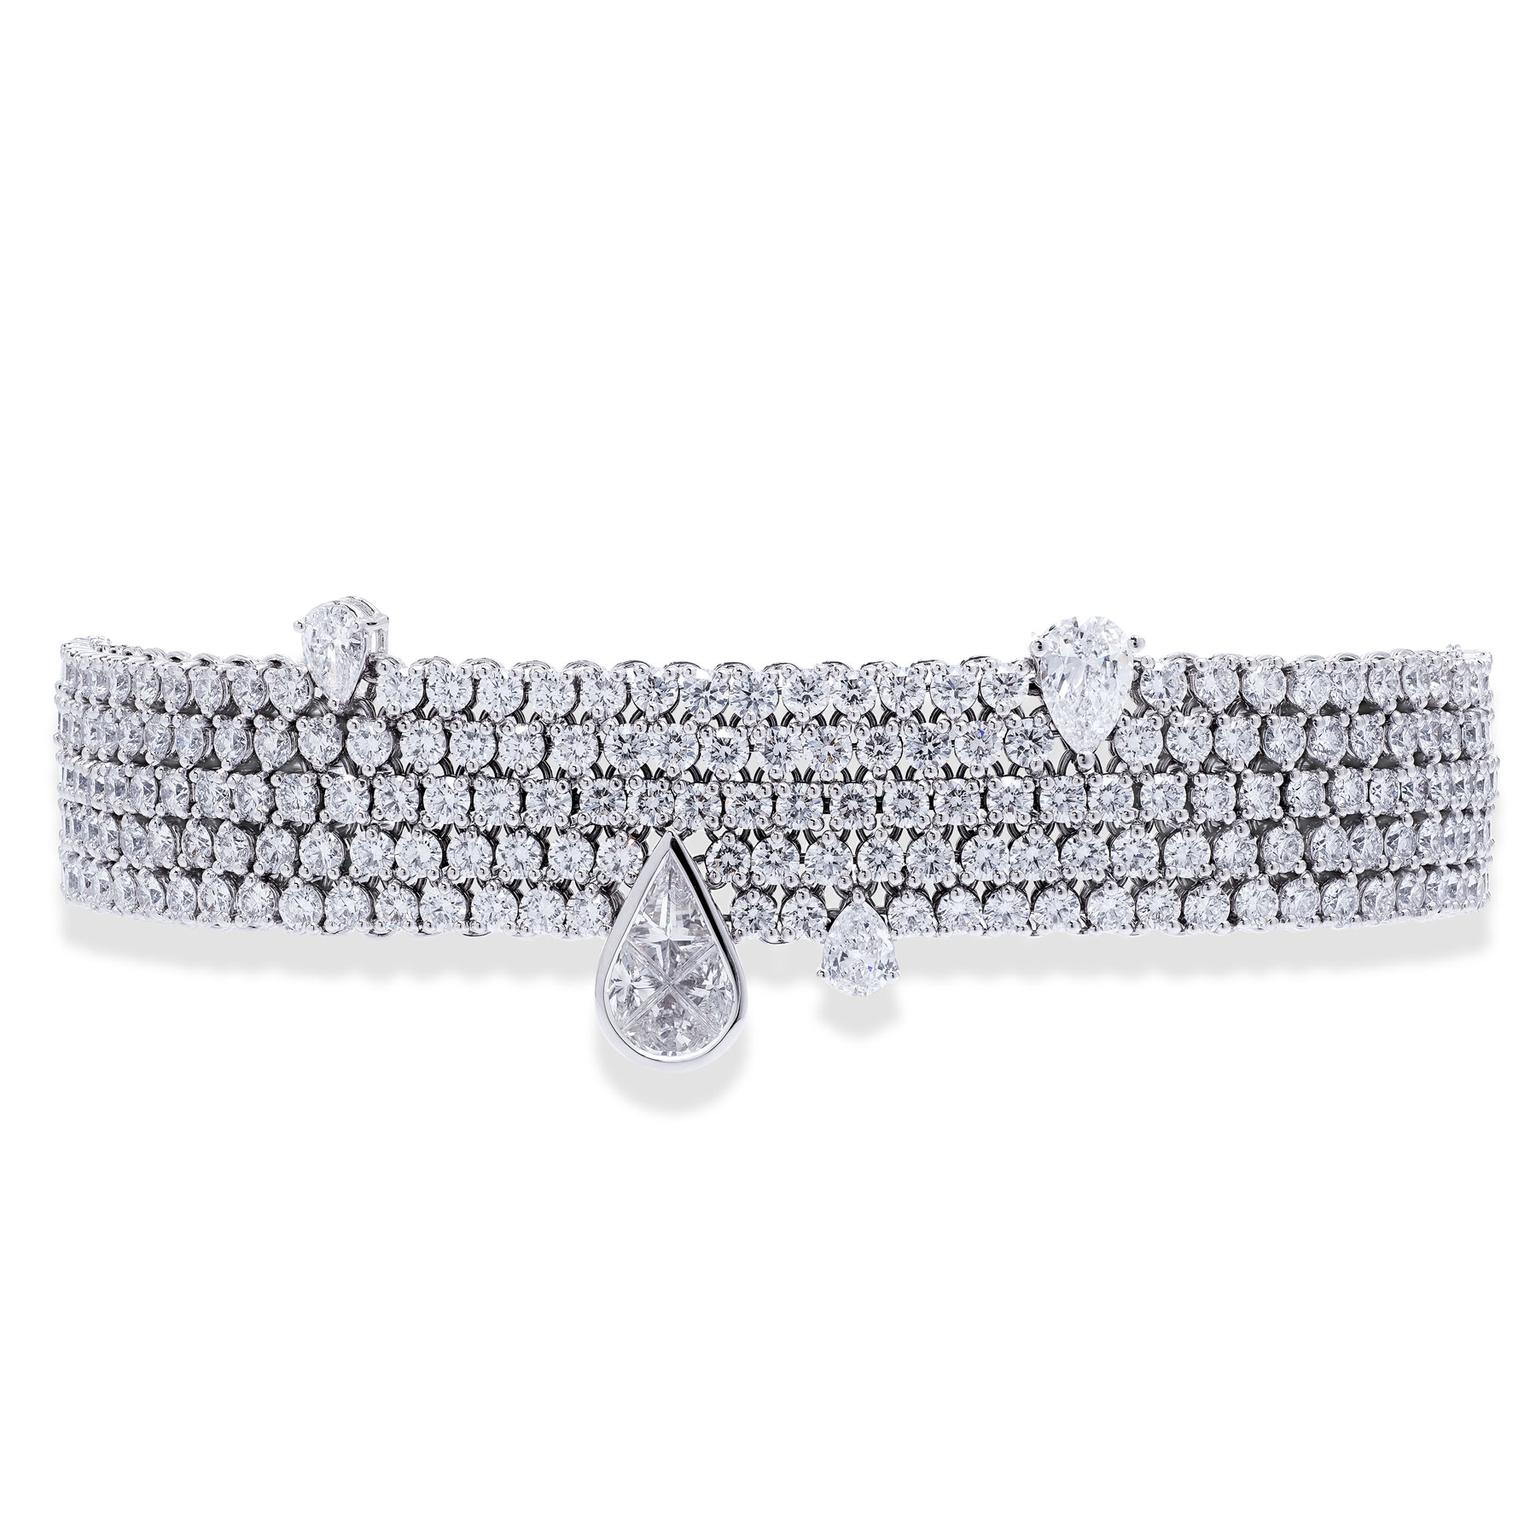 Stenzhorn The Cowherd and Weaver Girl diamond bracelet